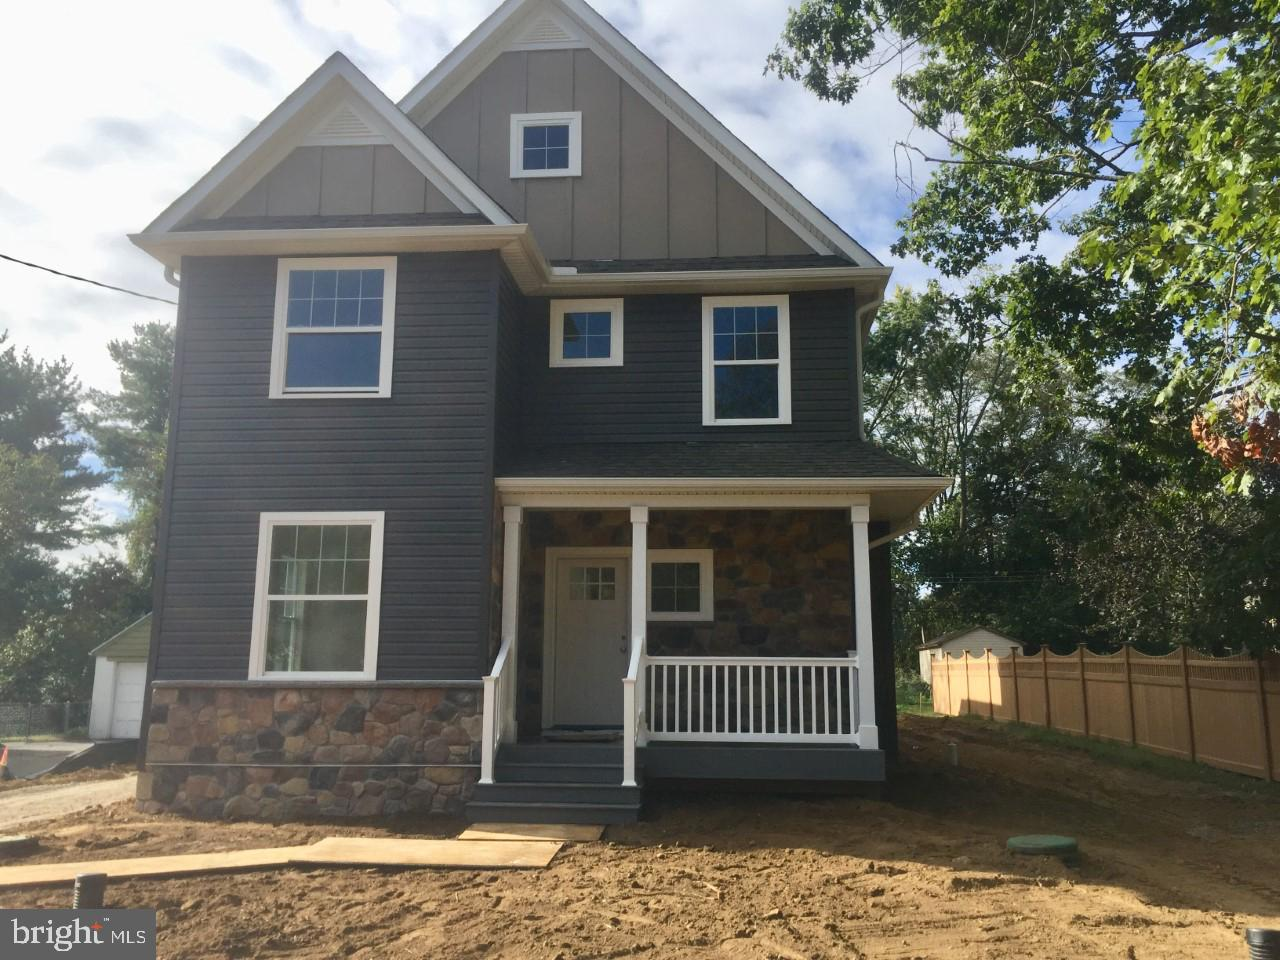 304 W ROSE VALLEY ROAD, WALLINGFORD, PA 19086